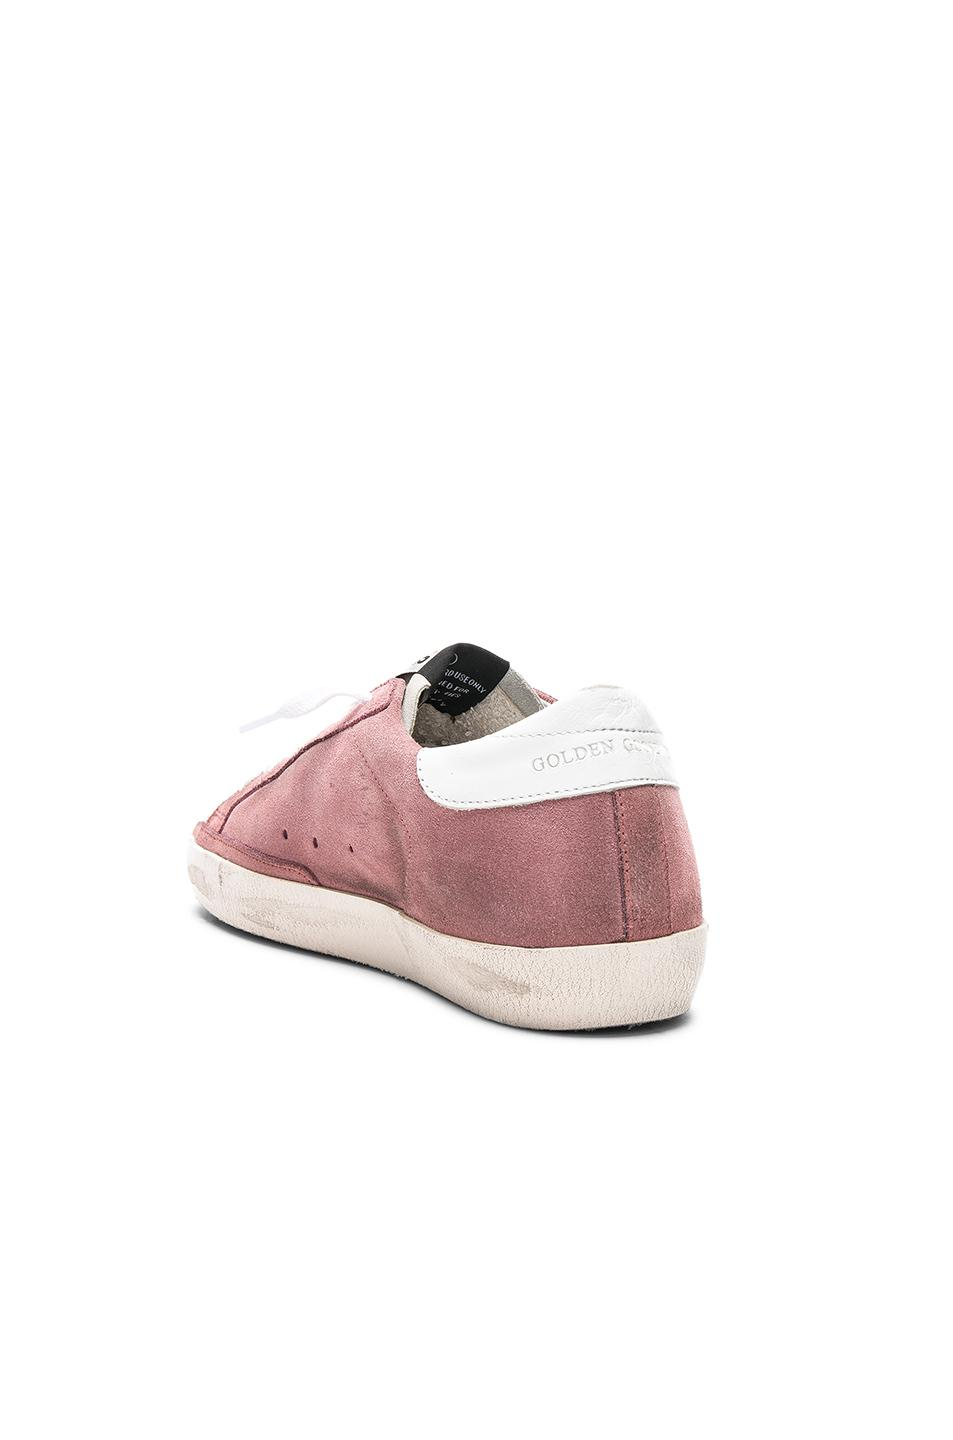 Golden Goose Deluxe Brand Suede Sneakers Superstar in Pink, White & Blue (Pink)